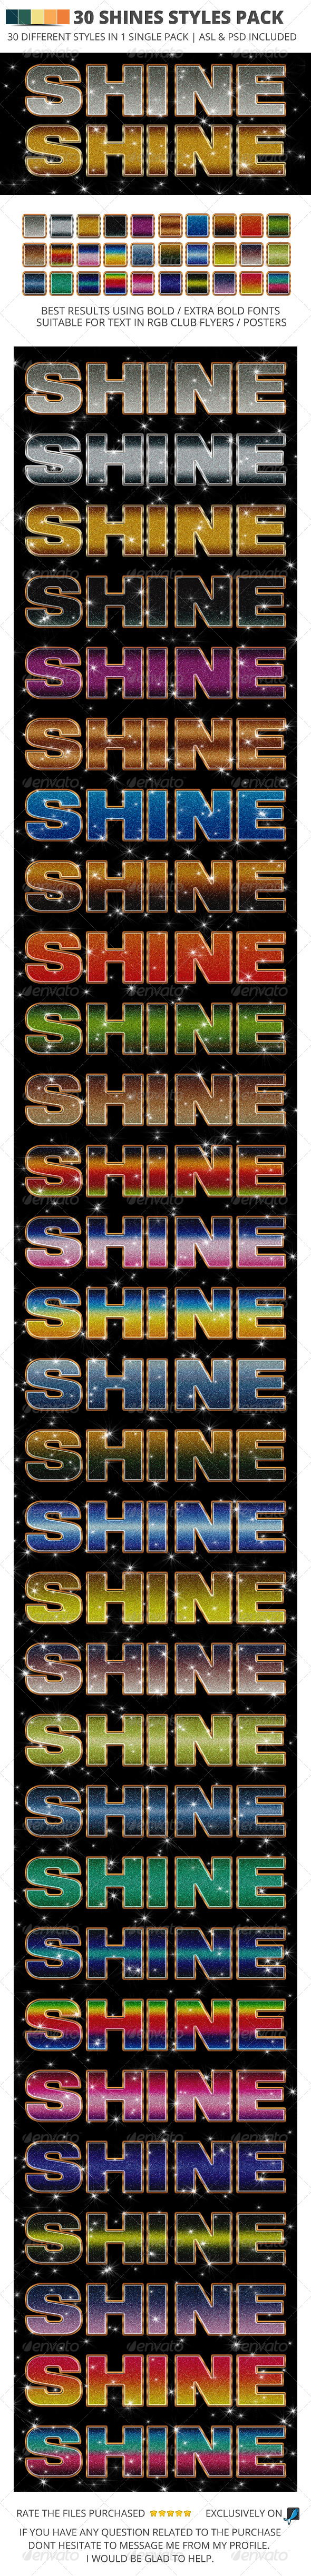 30 Shine Style Pack Photoshop - Text Effects Styles